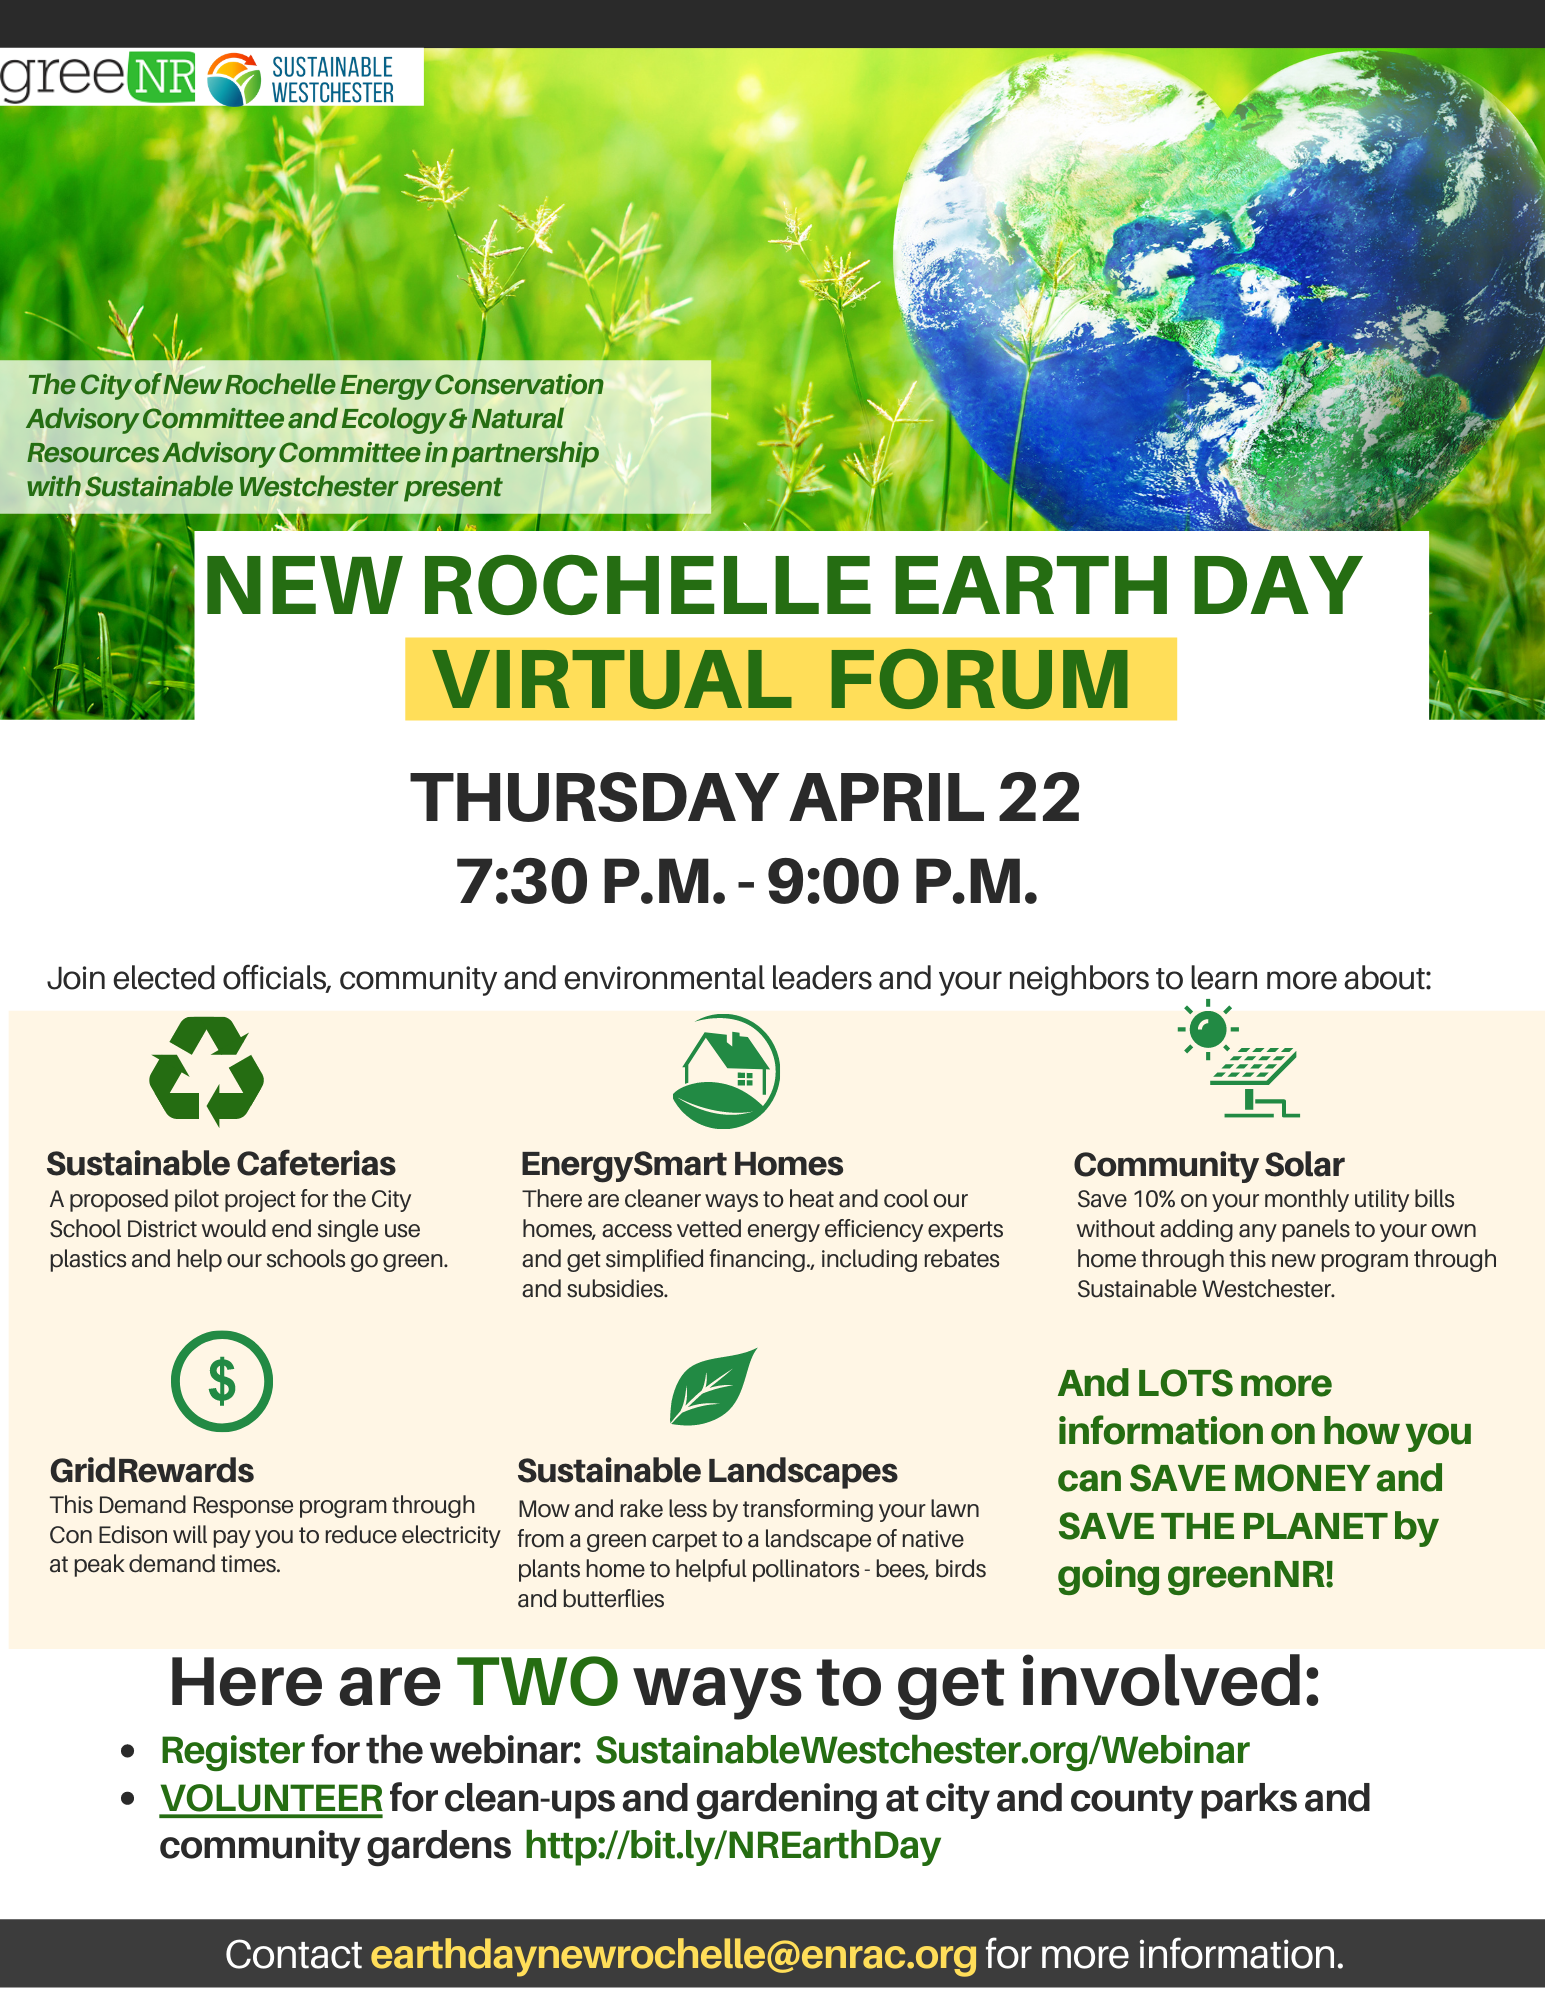 New Rochelle Earth Day Virtual Forum_Info Flyer (1)